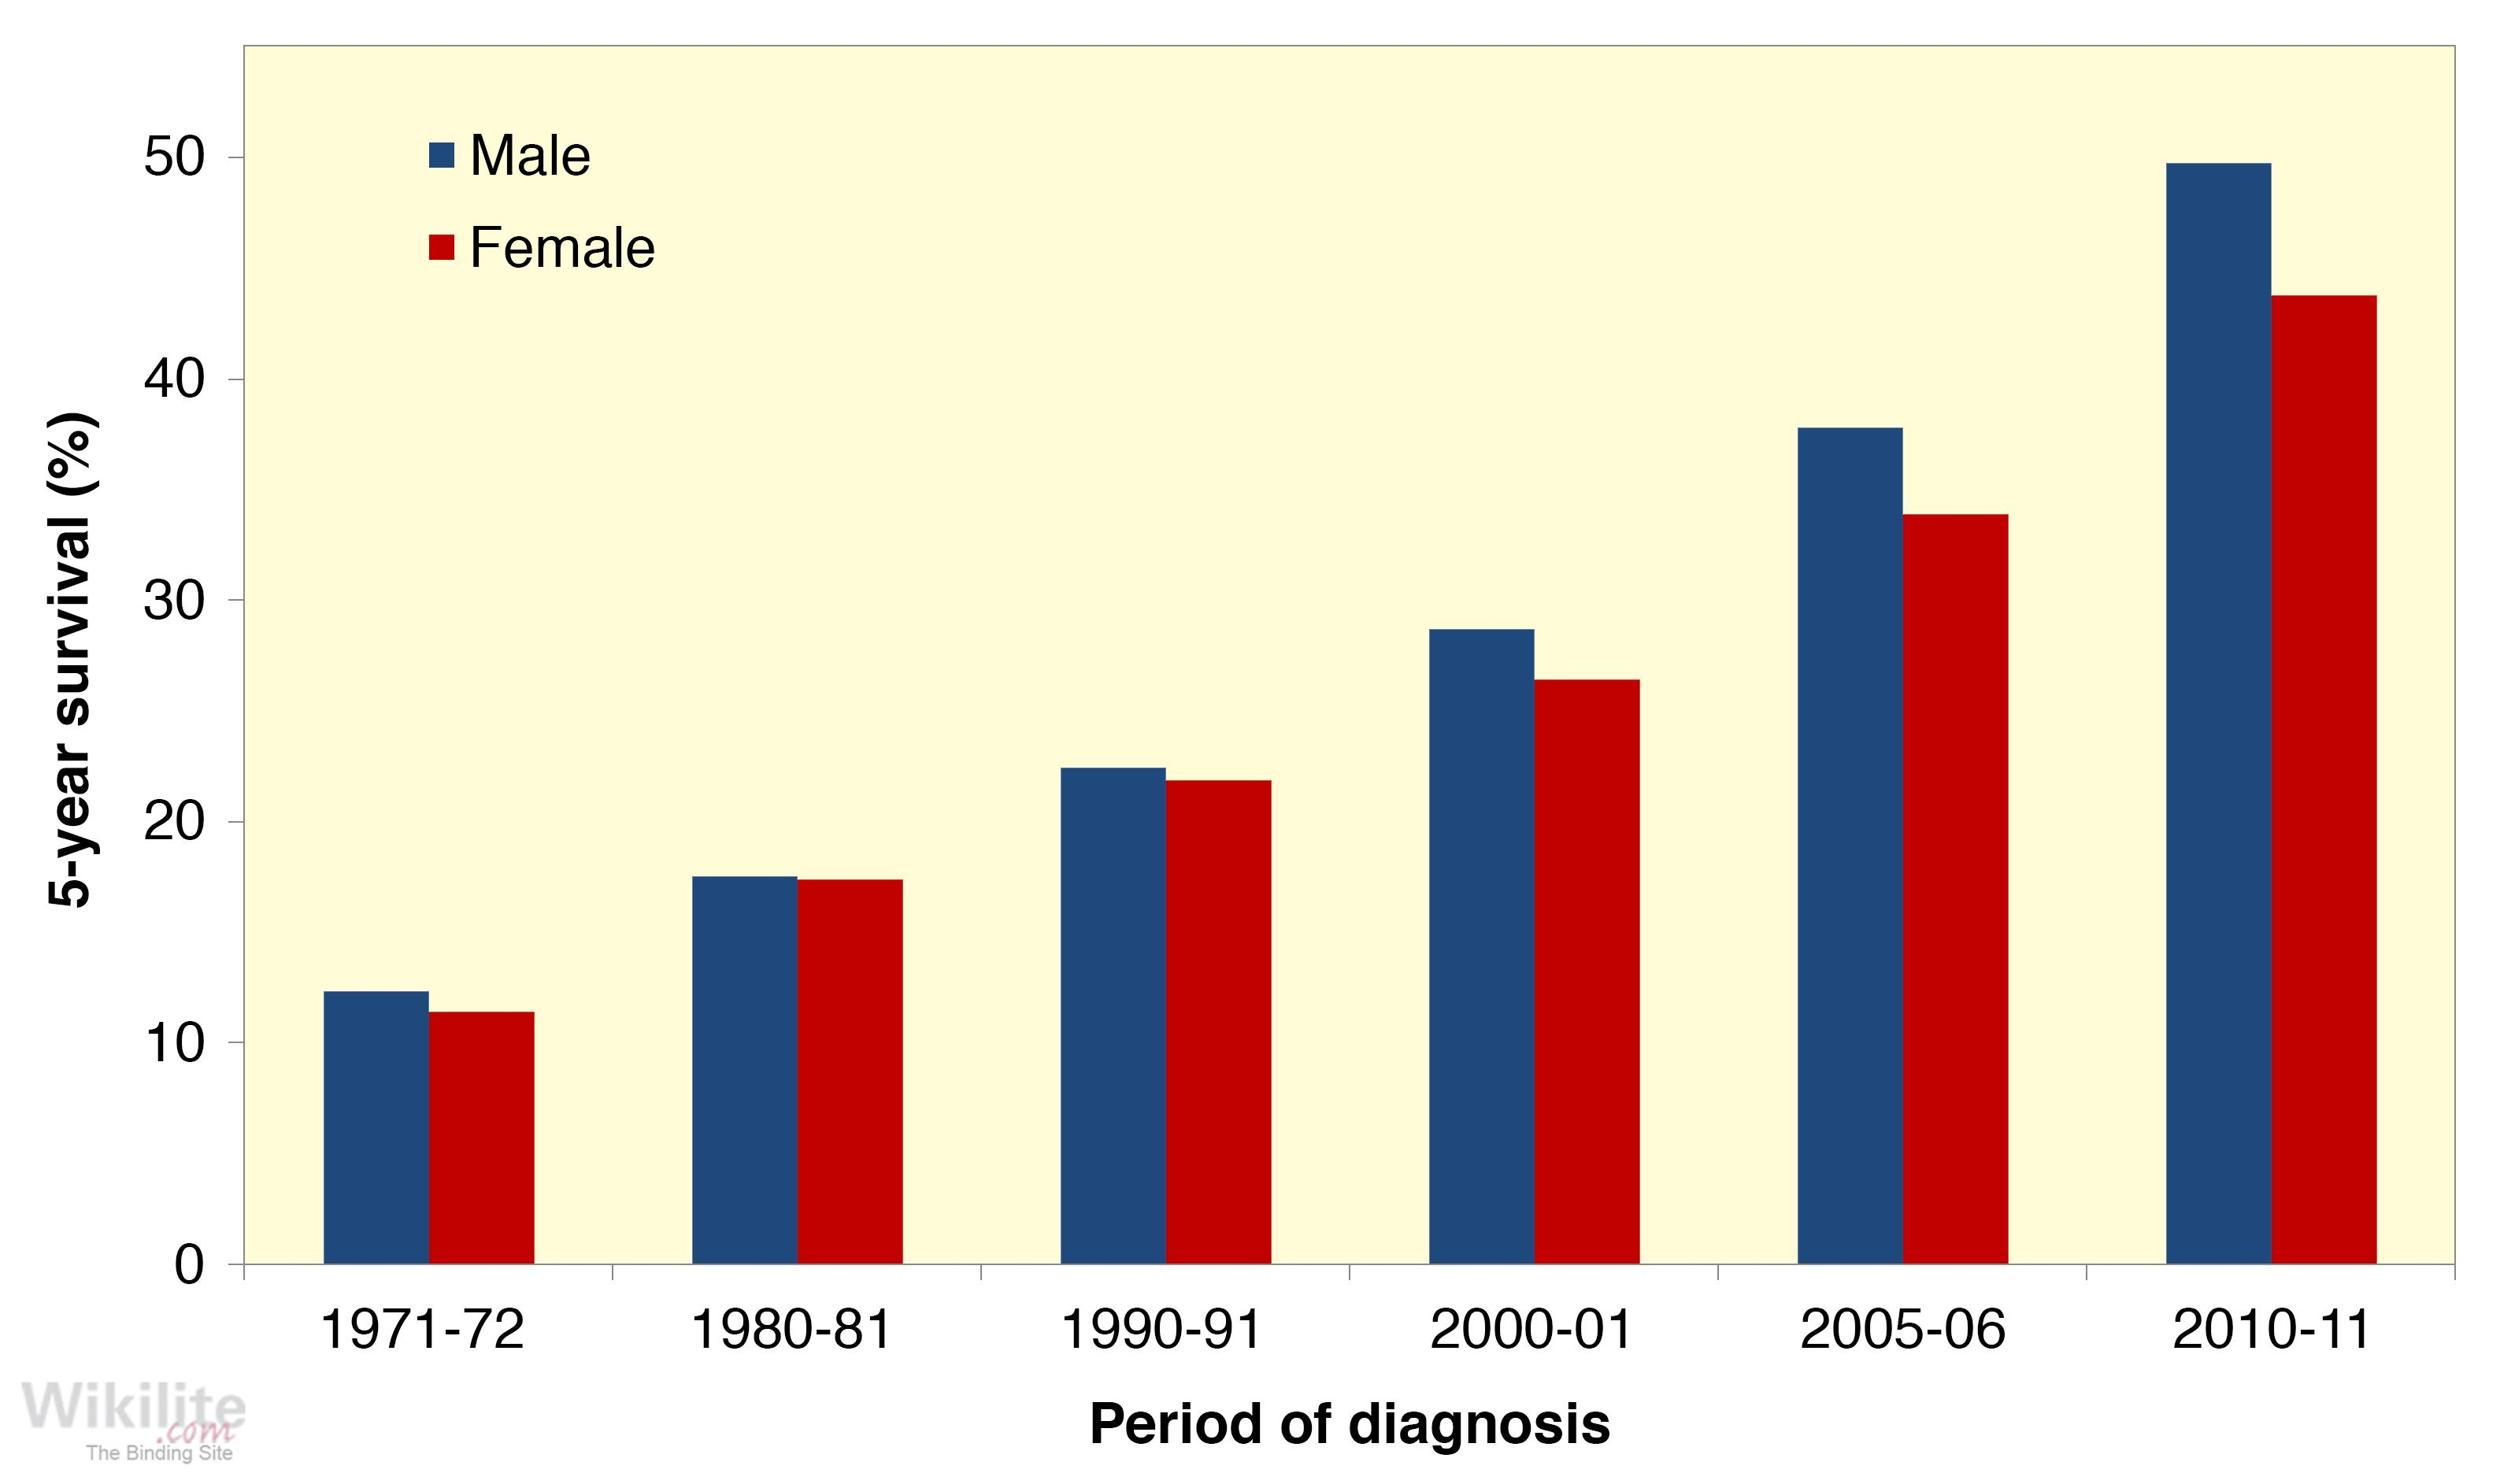 Figure 12.3. Age-standardised five-year myeloma survival rates in England from 1971-2011